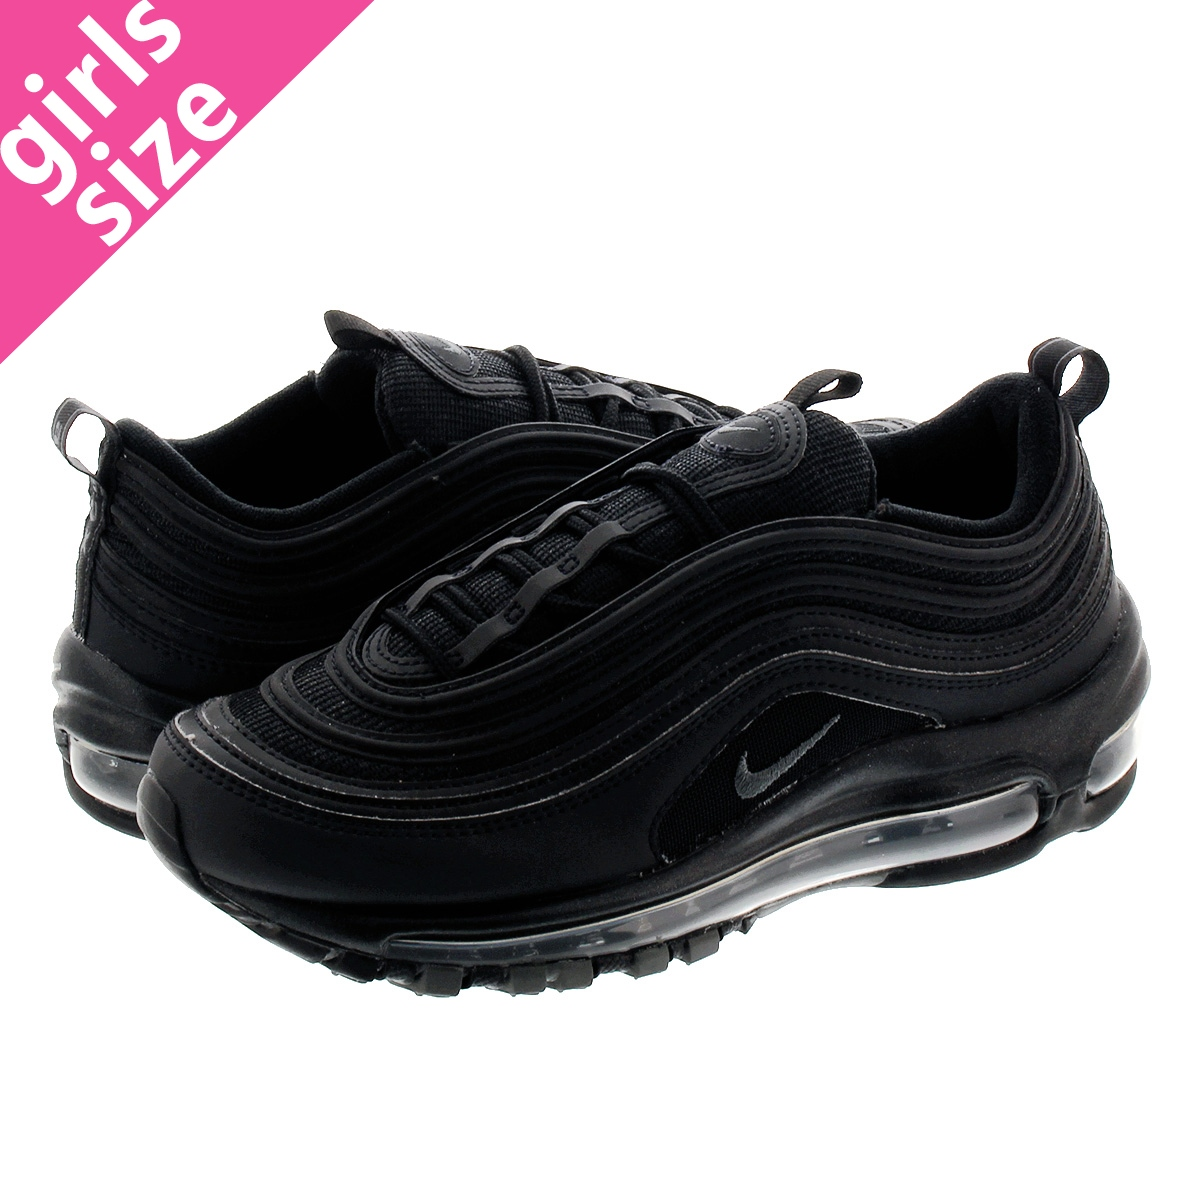 NIKE WMNS AIR MAX 97 BLACKBLACKDARK GREY NIKE WMNS AIR MAX 97 Nike women Air Max 97 BLACKBLACKDARK GREY 921,733 001